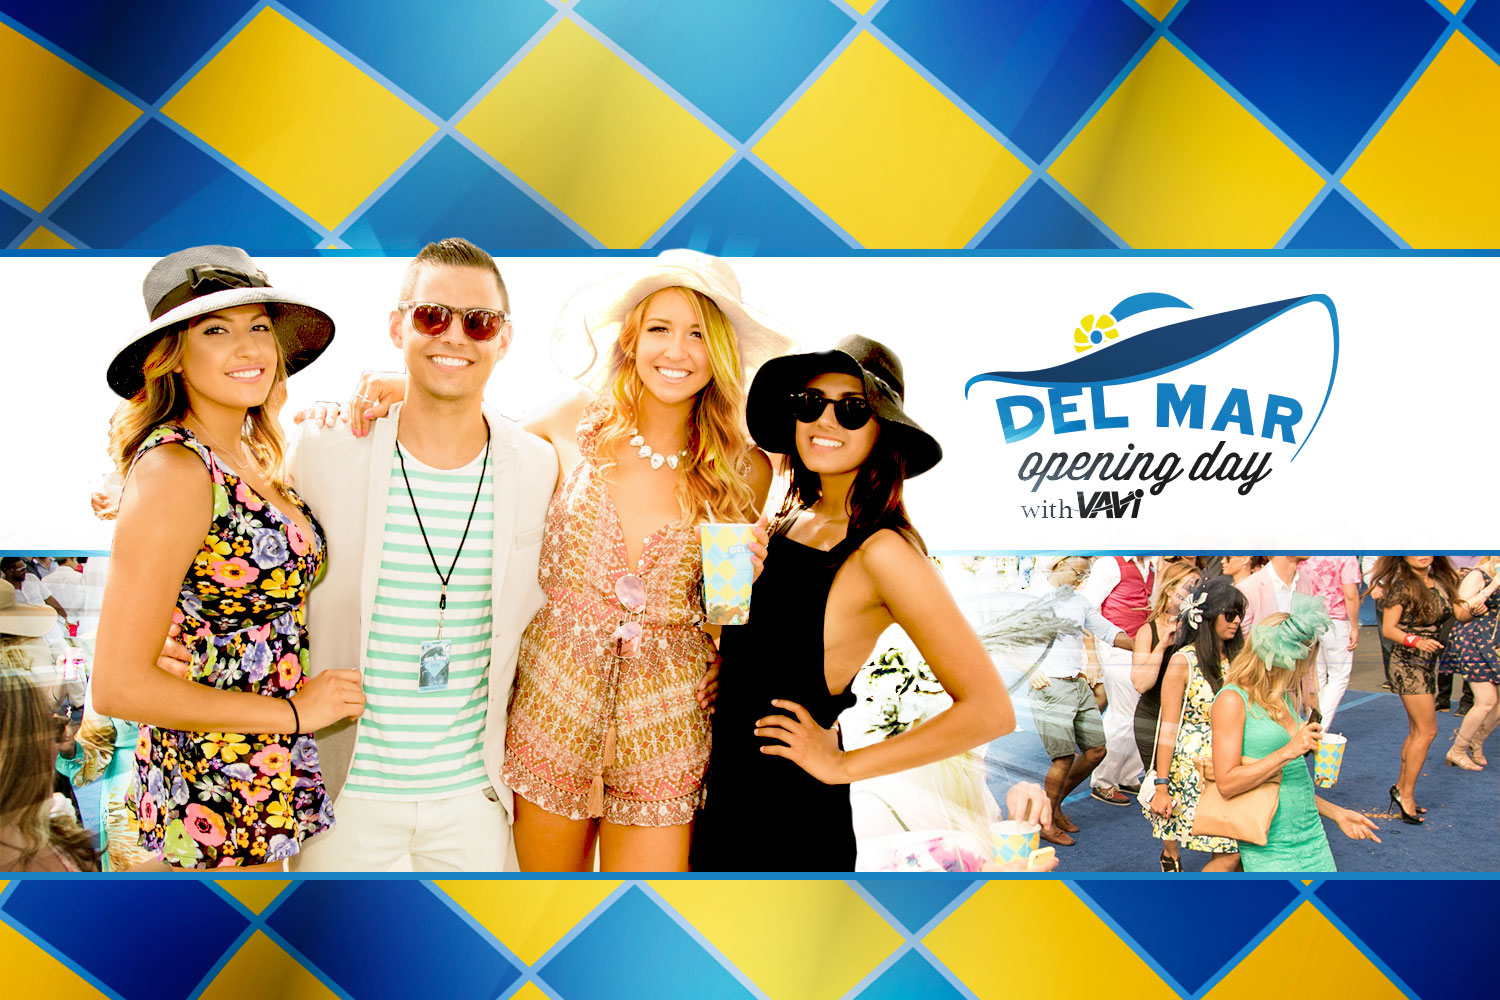 Del Mar Opening Day with VAVi • Weds, July 18th